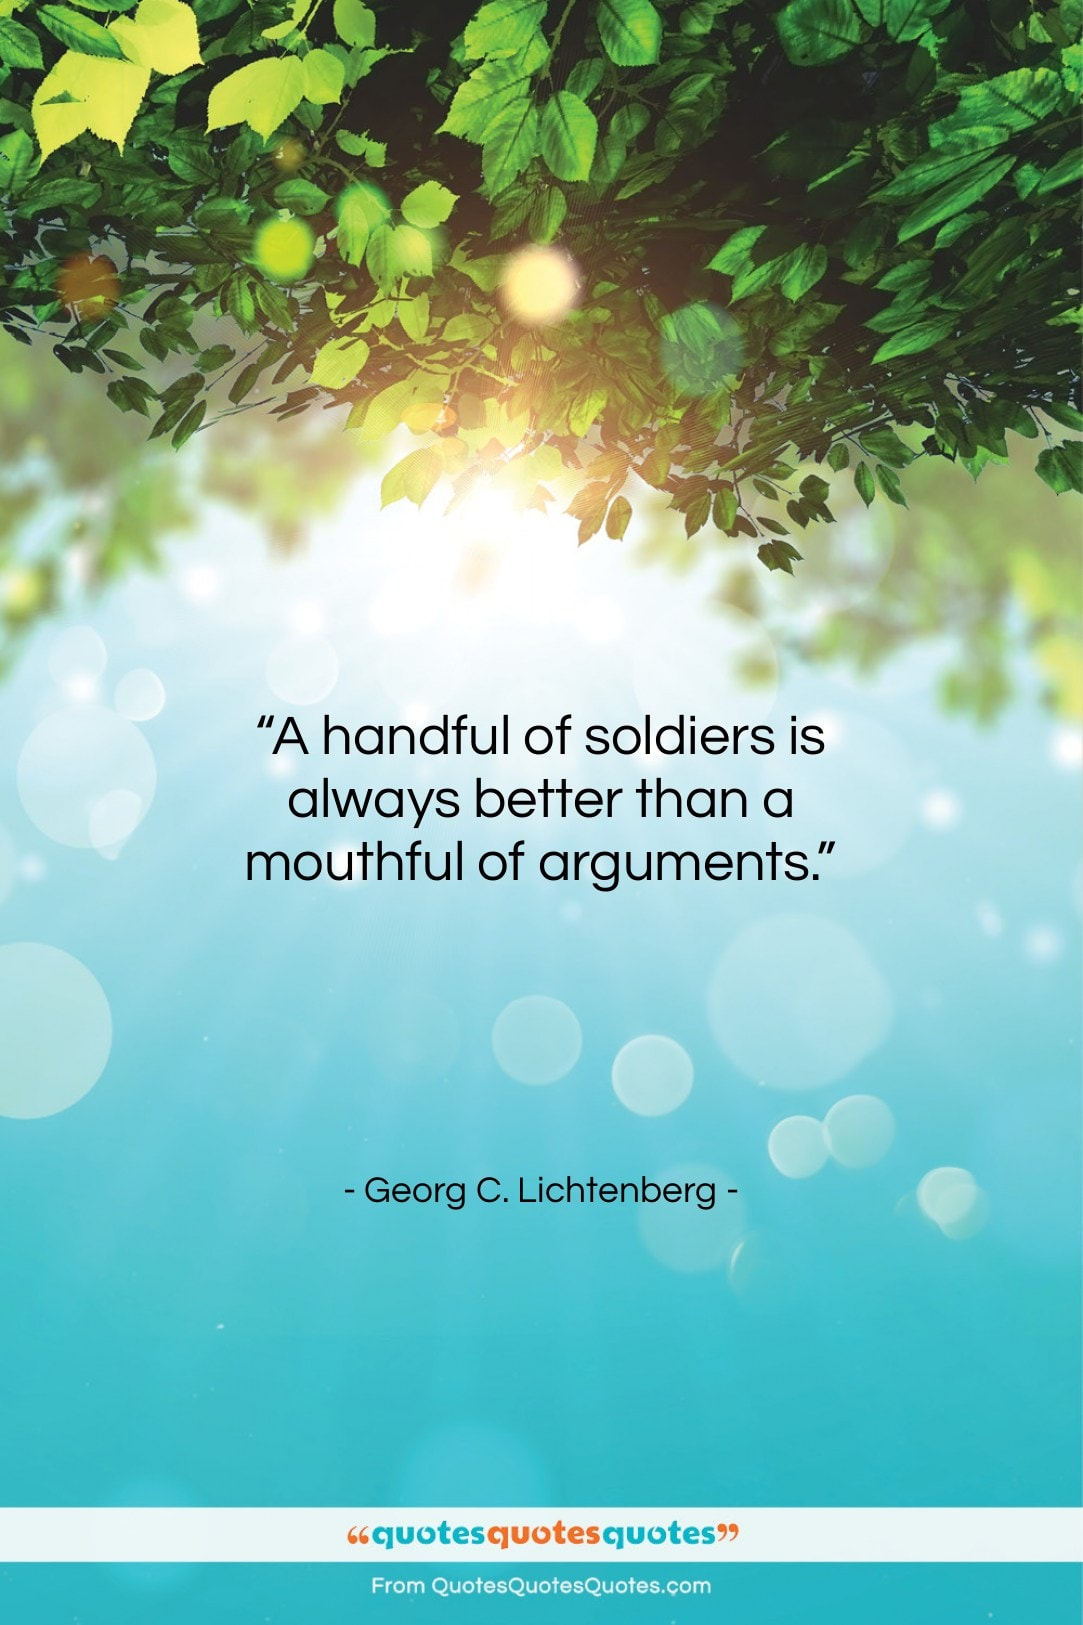 """Georg C. Lichtenberg quote: """"A handful of soldiers is always better…""""- at QuotesQuotesQuotes.com"""